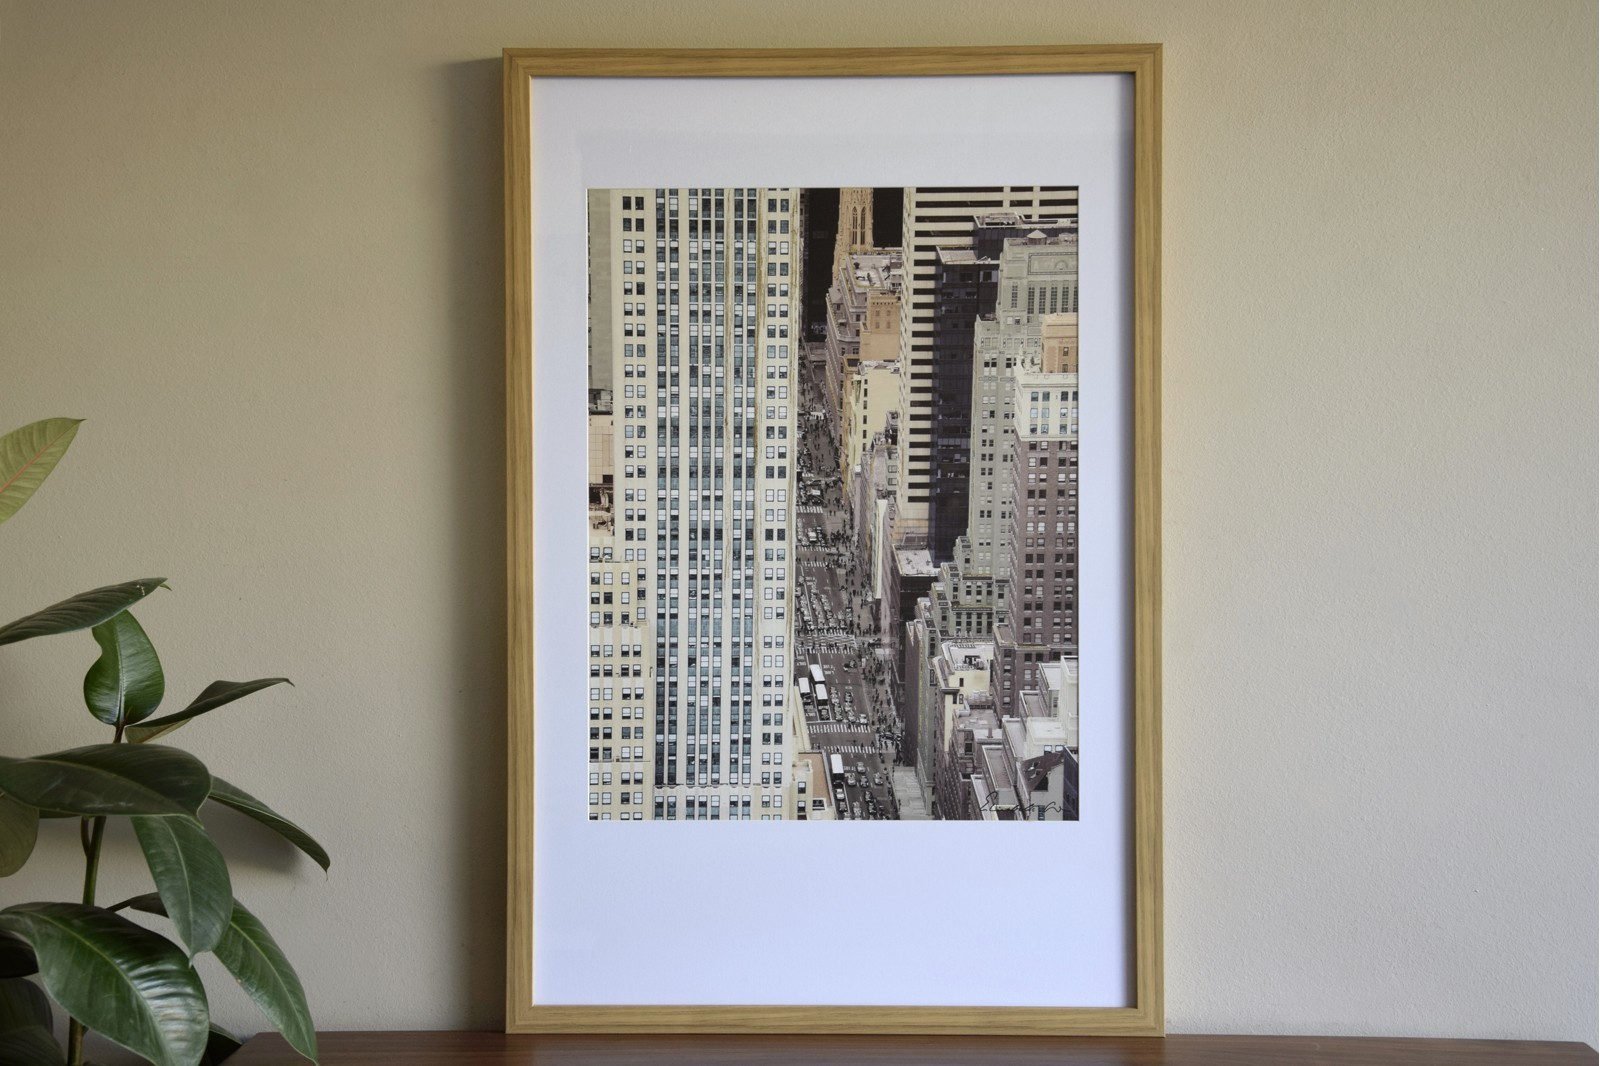 CITY PHOTO FRAME N1. GLASS AND FRAME